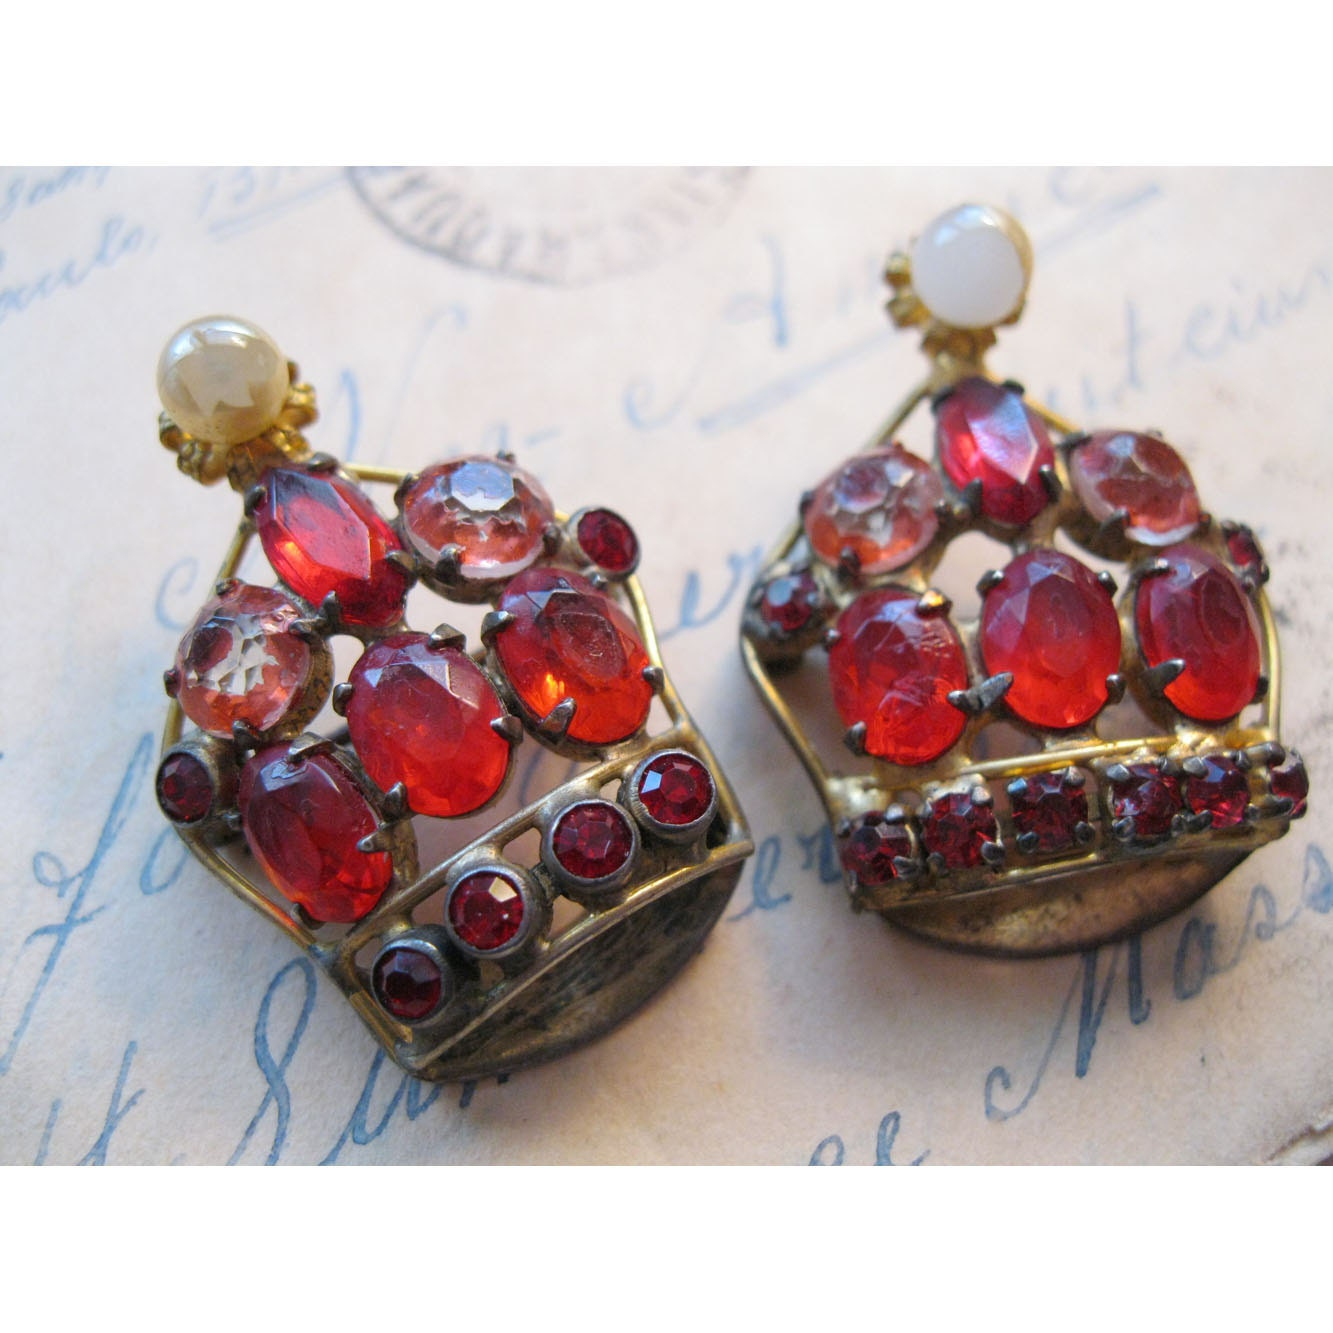 SALE - 2 vintage CROWN brooches - a FABULOUS pair - red stones, each slightly different, so unique